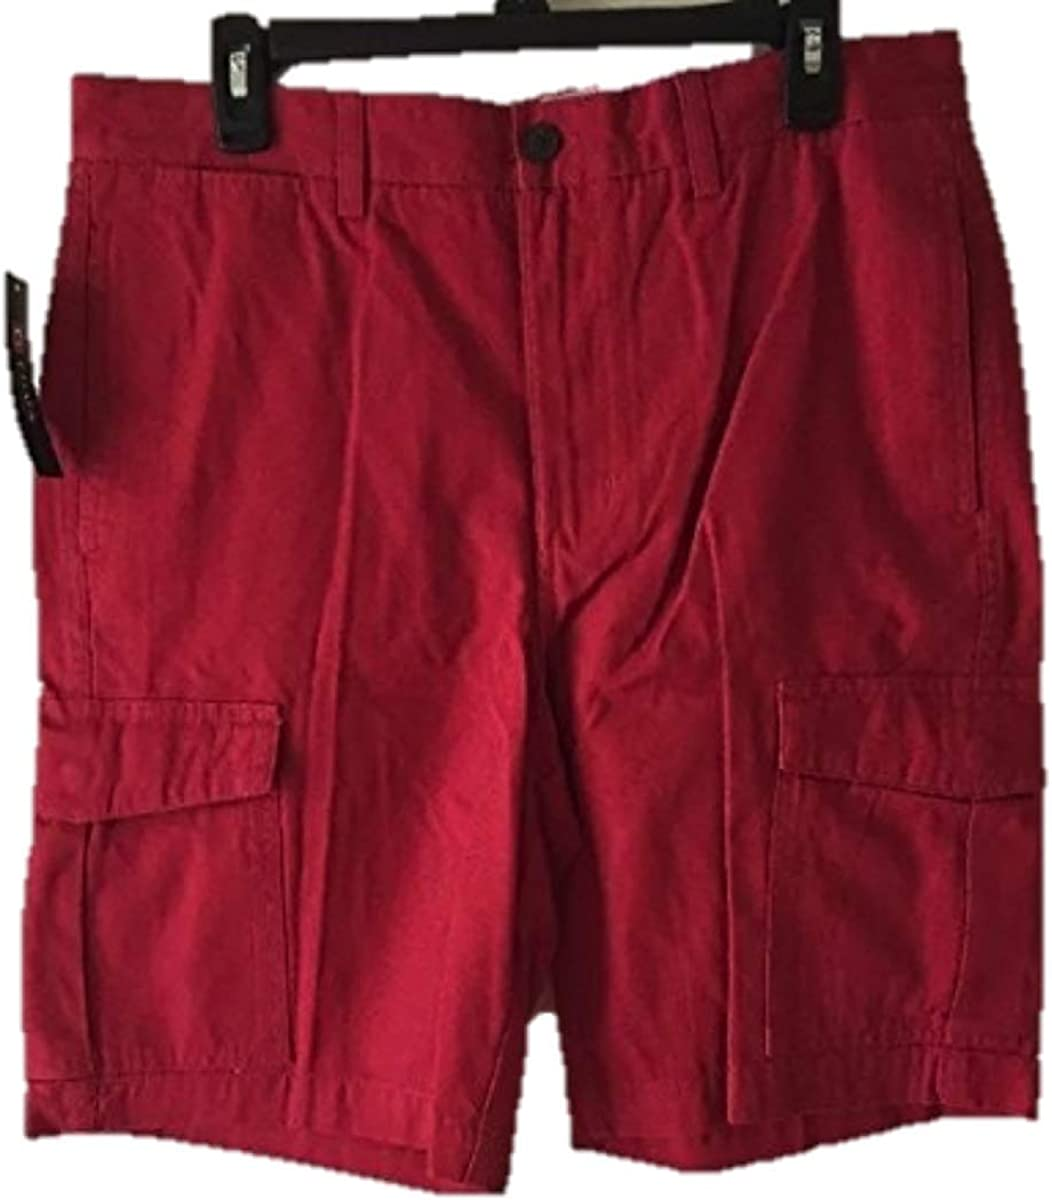 Chaps Flat Front Cargo Short red Size 34